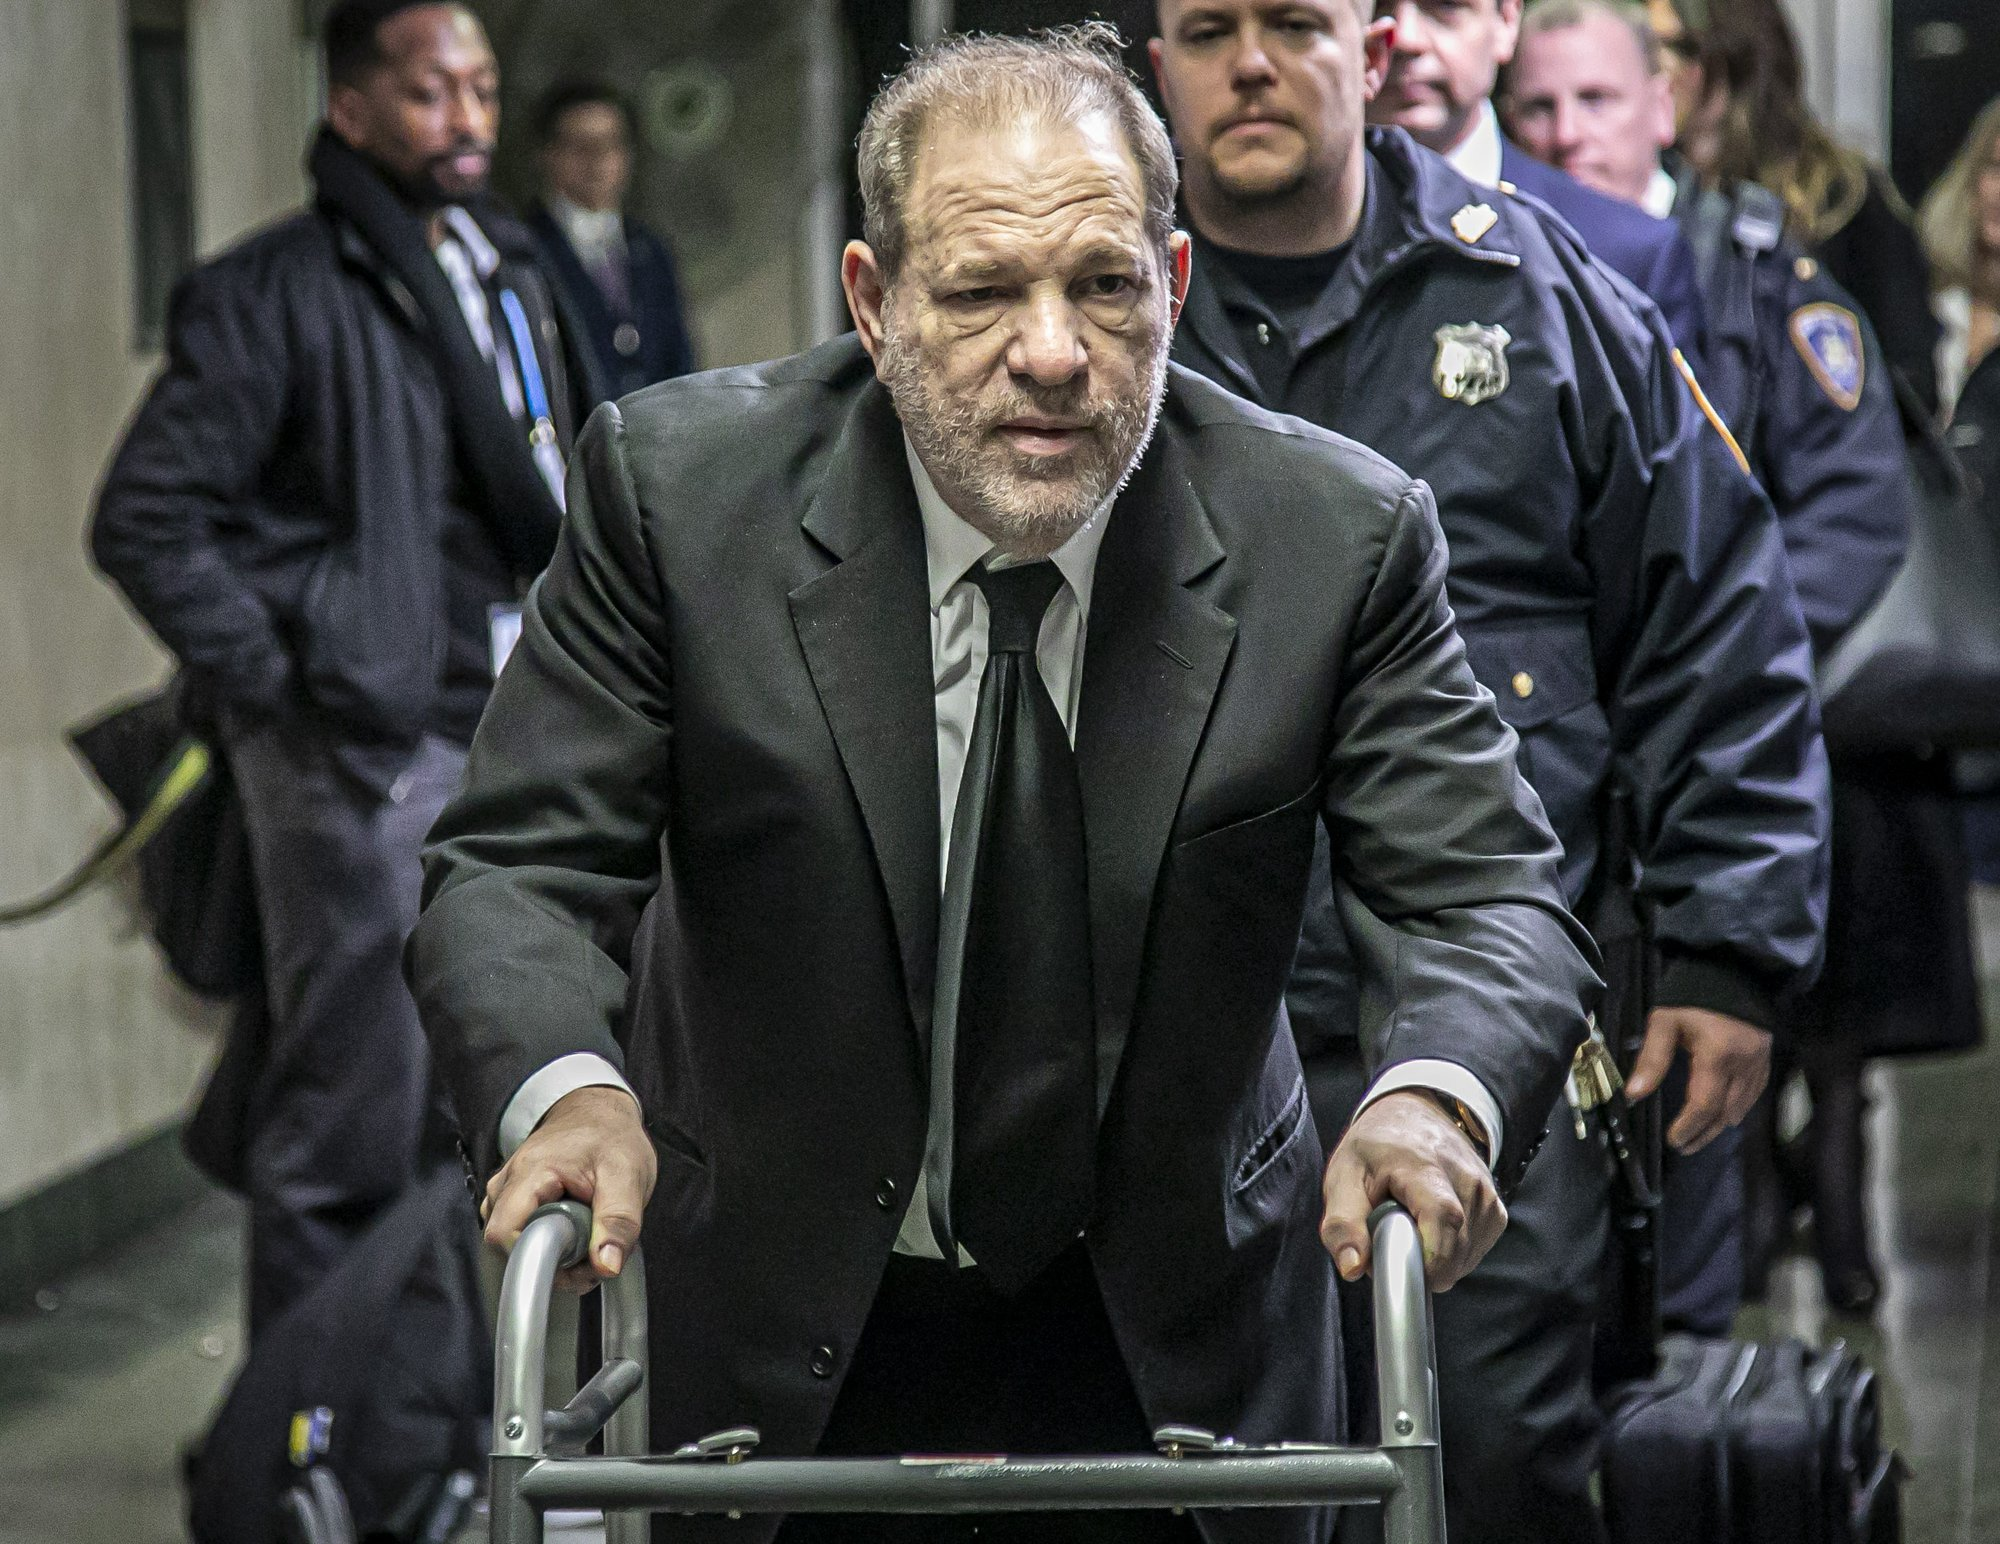 From Metoo To Trial A Look At The Fall Of Harvey Weinstein